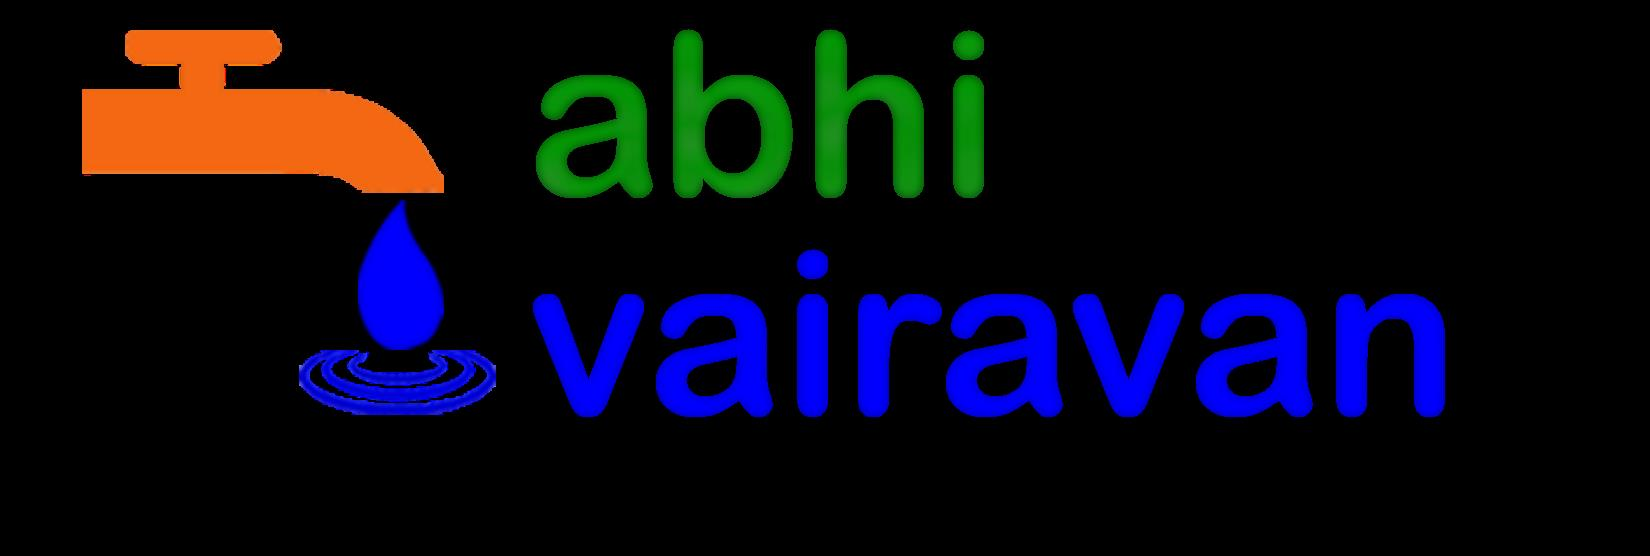 Abhi Vairavan's Plumbing Co.  Call Us  99625 44444 logo